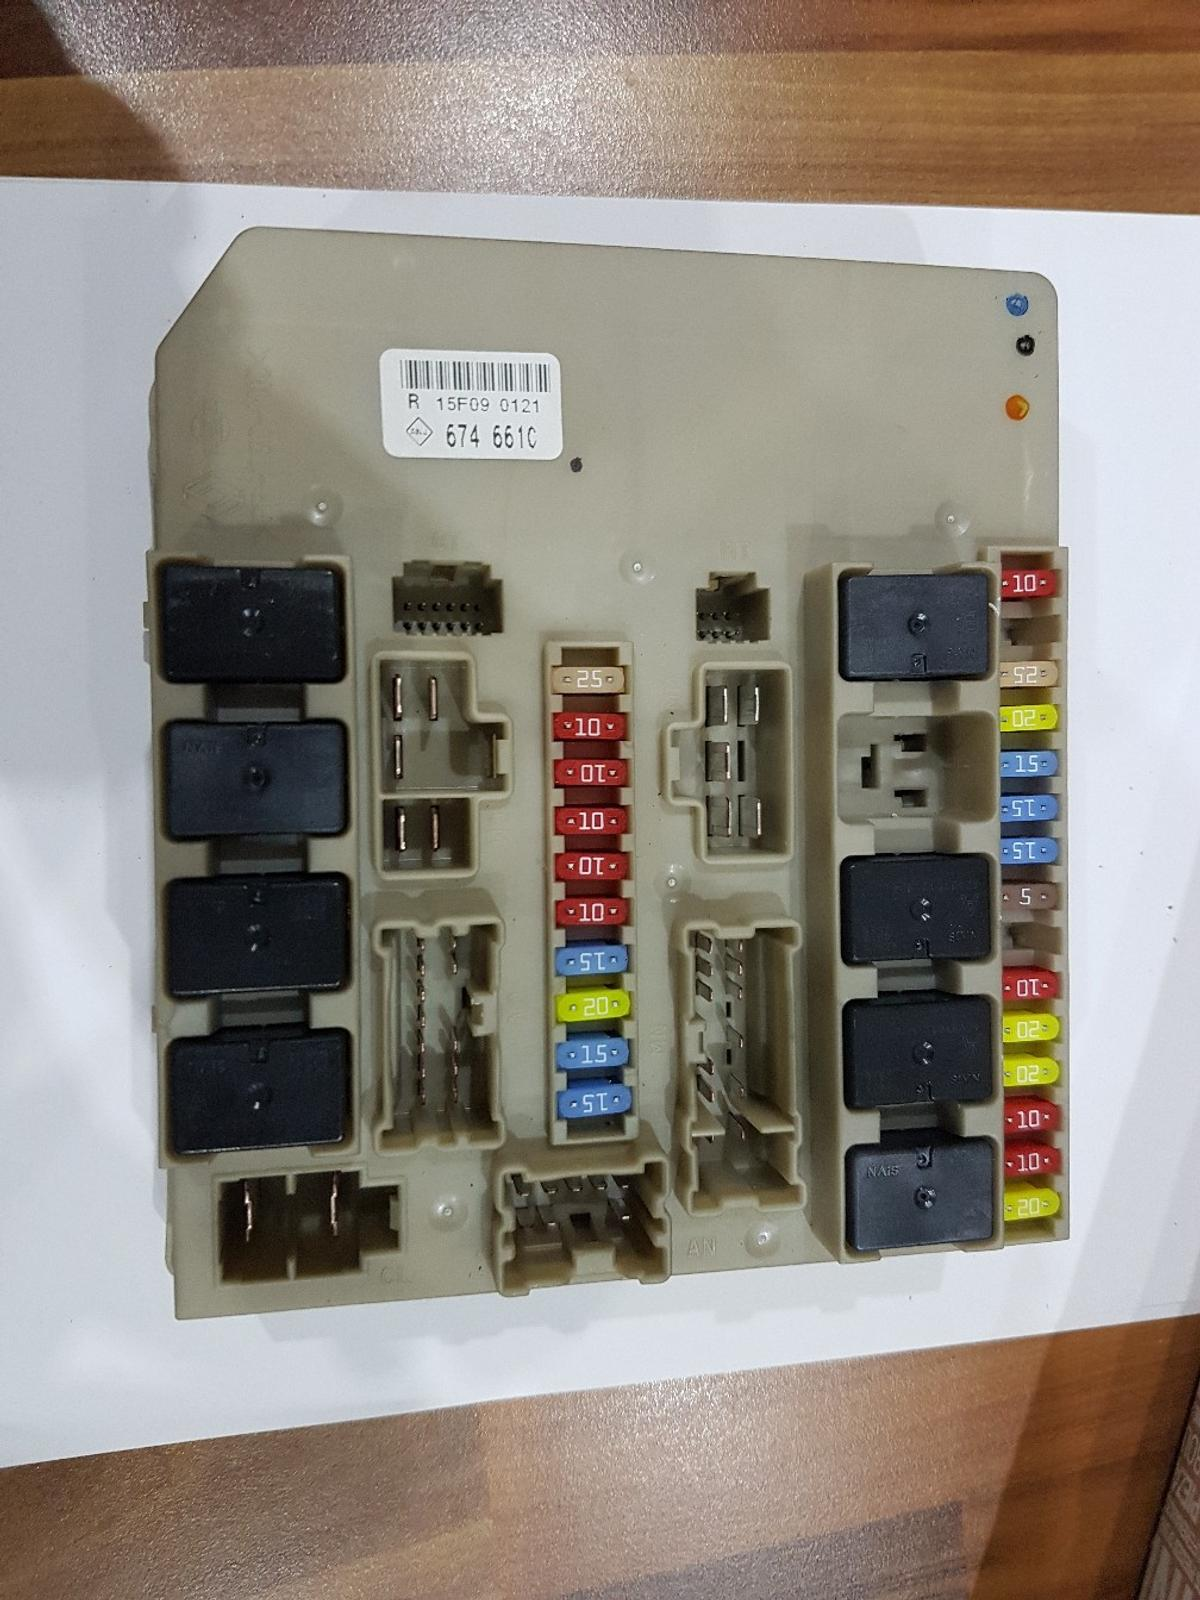 hight resolution of renault clio fuse box 82 00 674 661